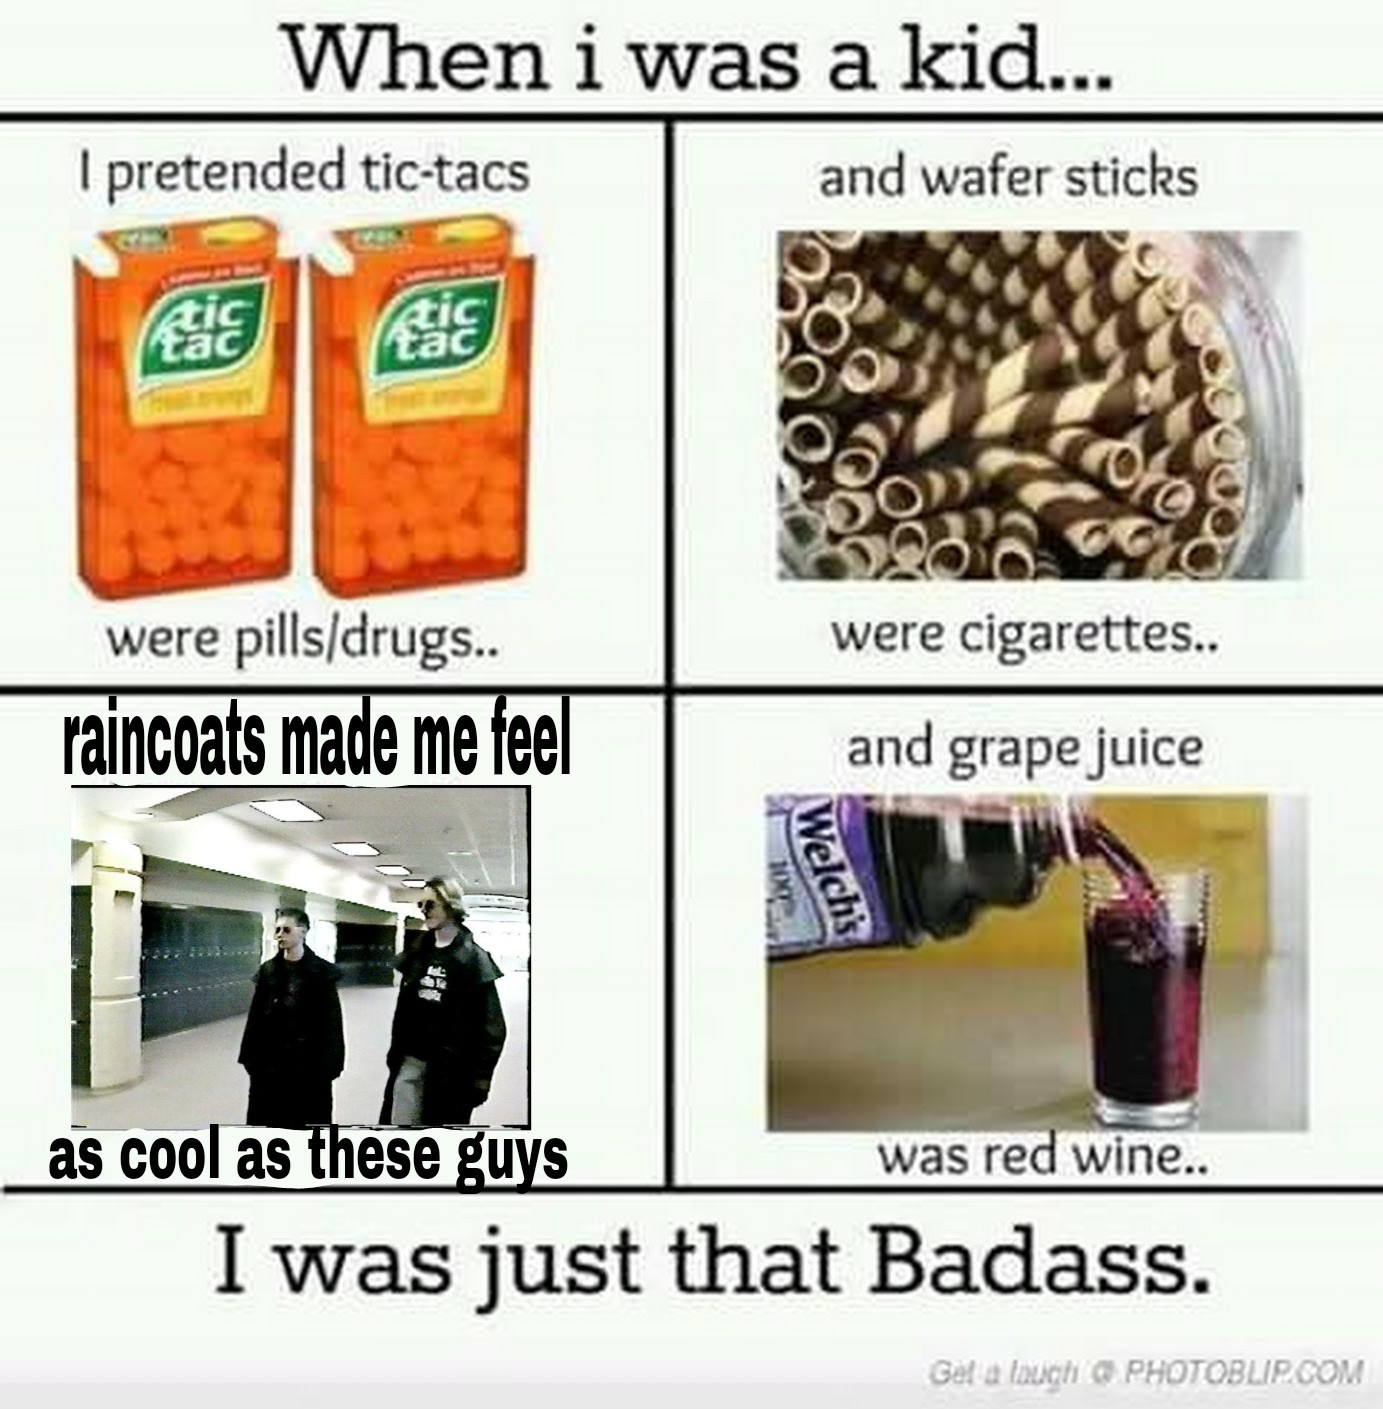 Just that badass - meme